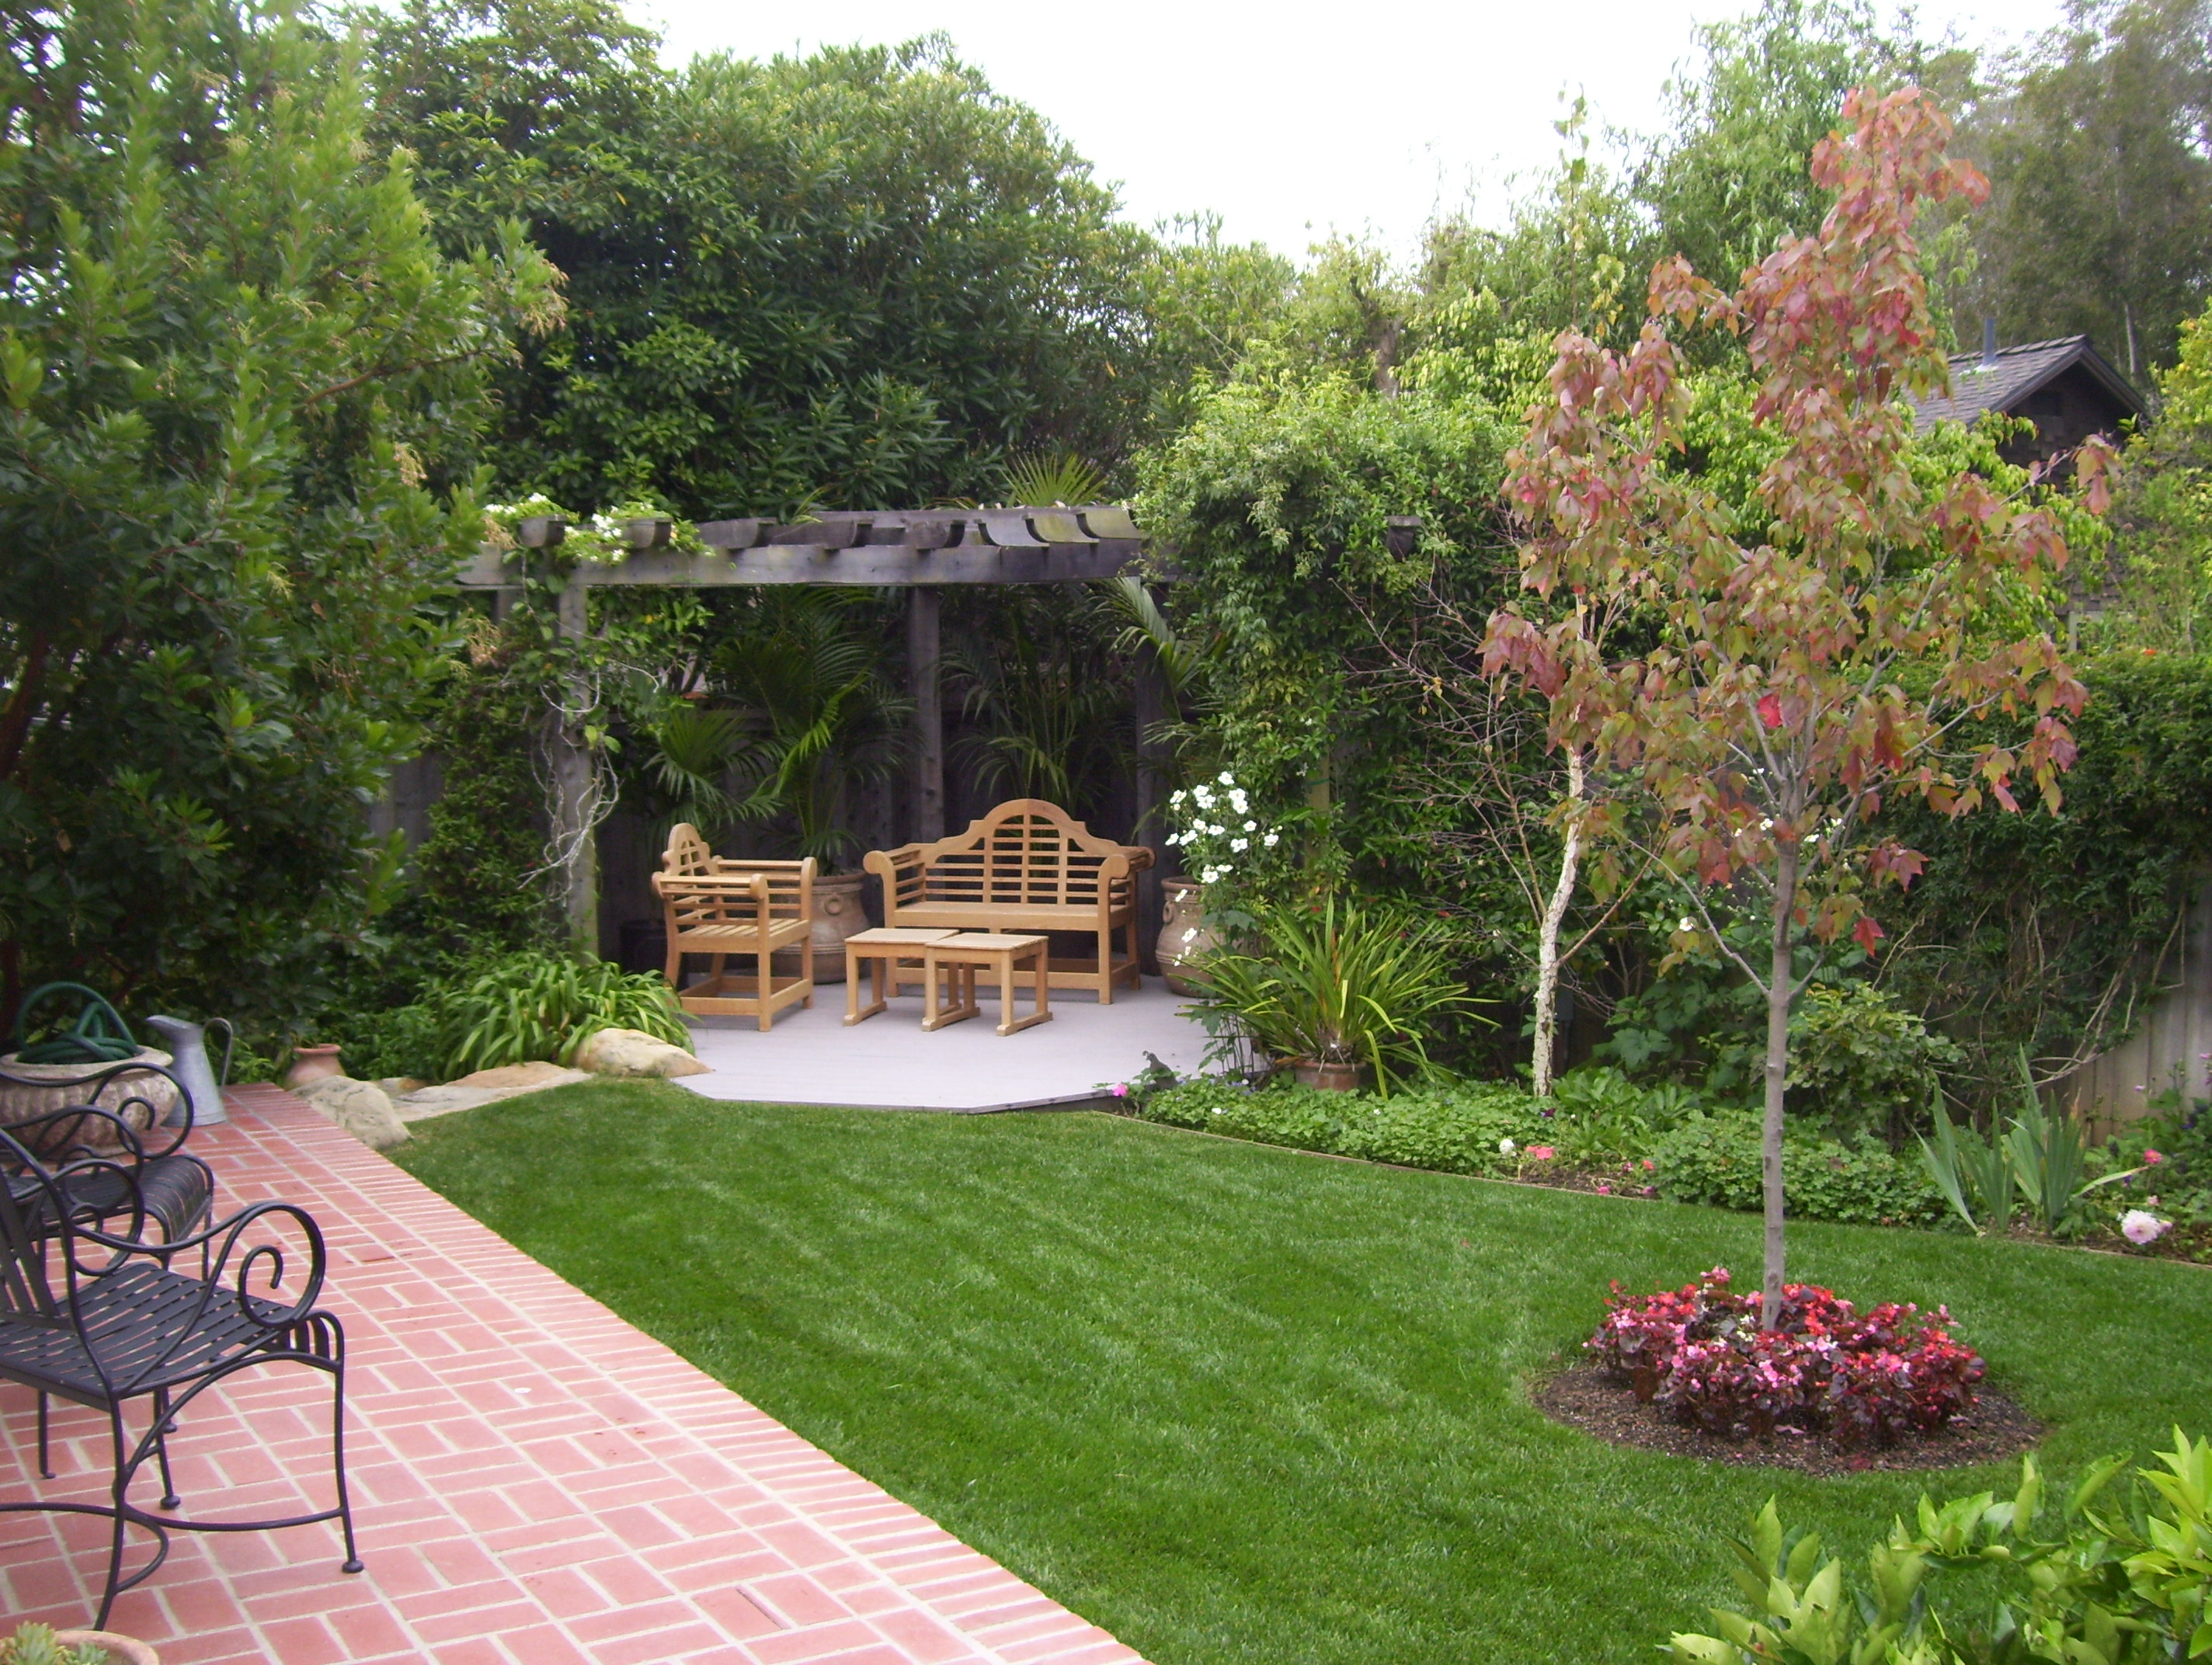 Backyard landscaping ideas santa barbara down to earth for Yard landscaping ideas